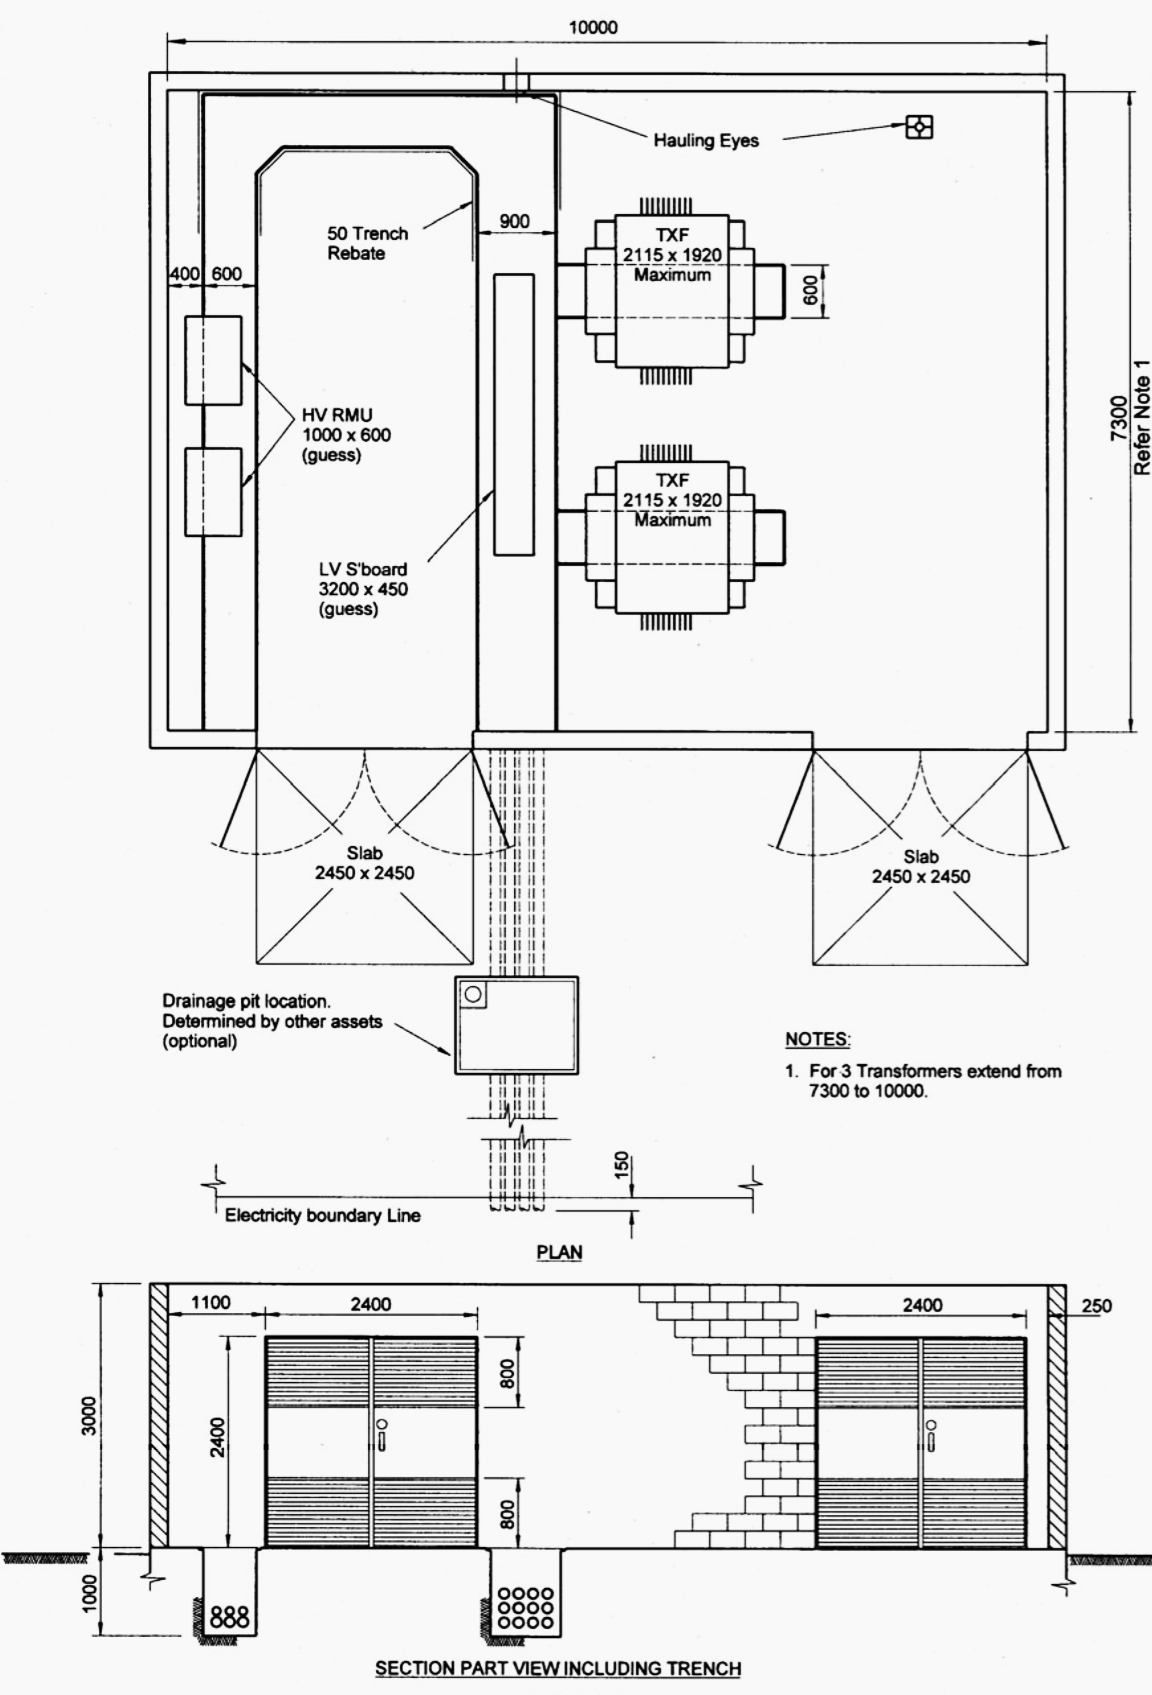 Indoor Distribution Substation Layout With 2 Transformers